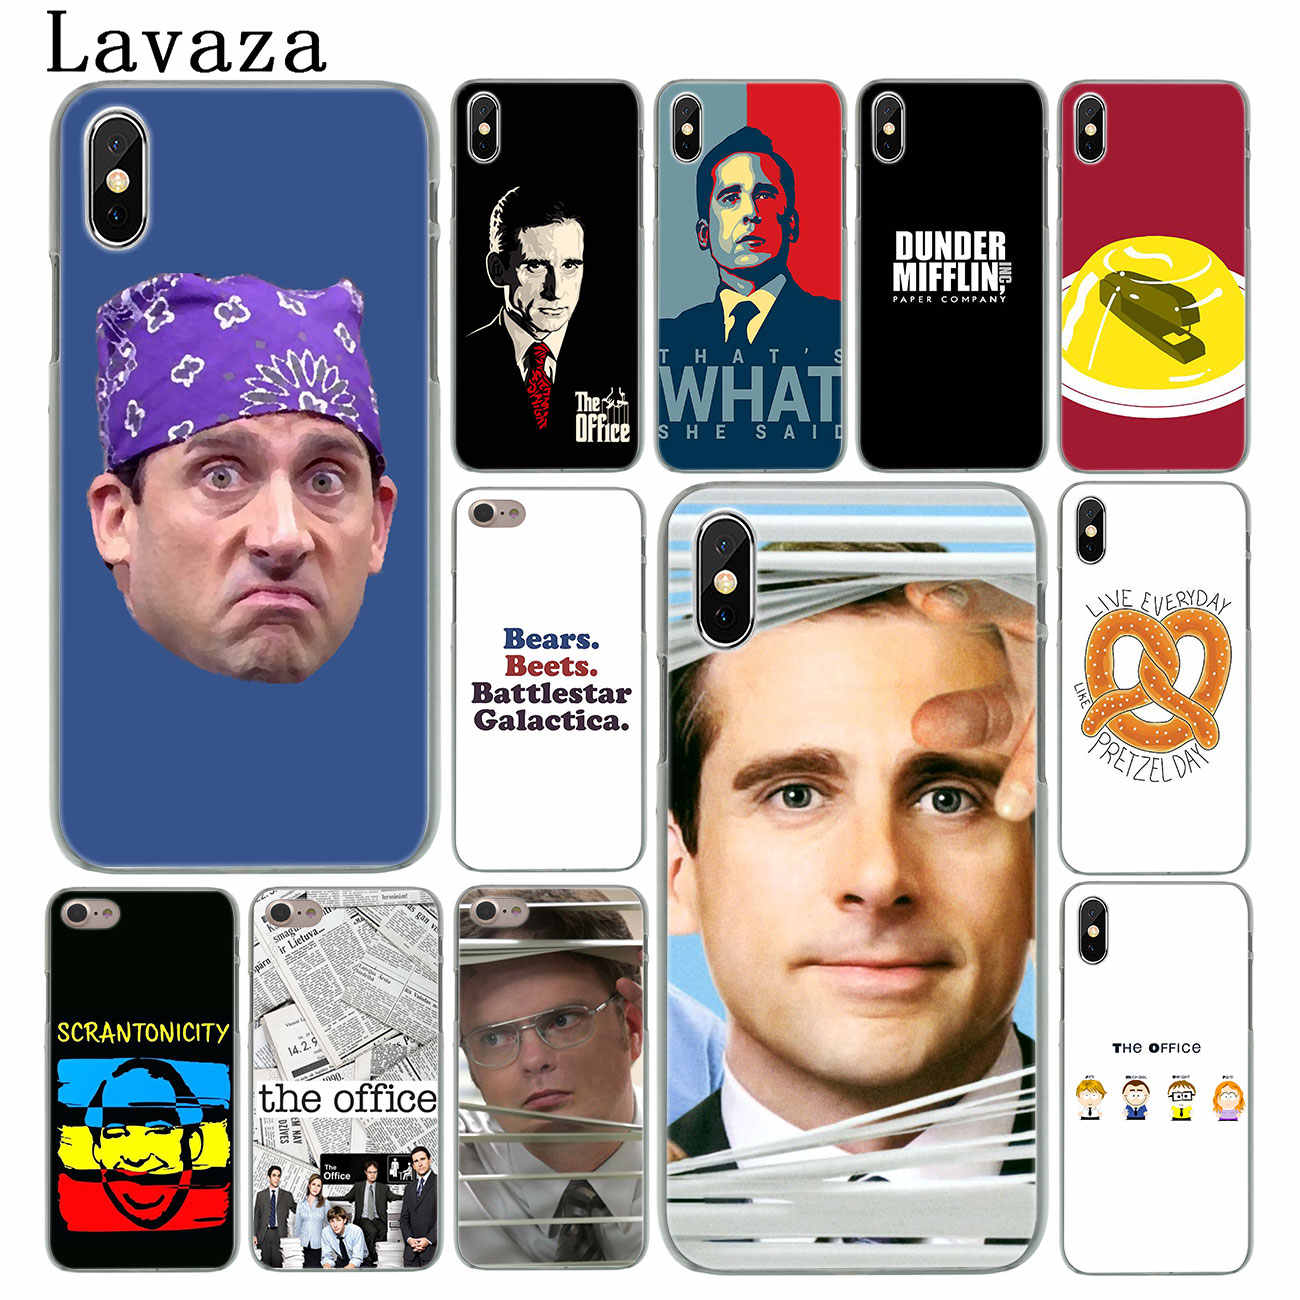 outlet store 6b431 29723 Lavaza TV the office cast meme Hard Phone Cover Case for Apple iPhone XS  Max X XR 6 6S 7 8 Plus 5 5S SE 5C 4S 10 Cases